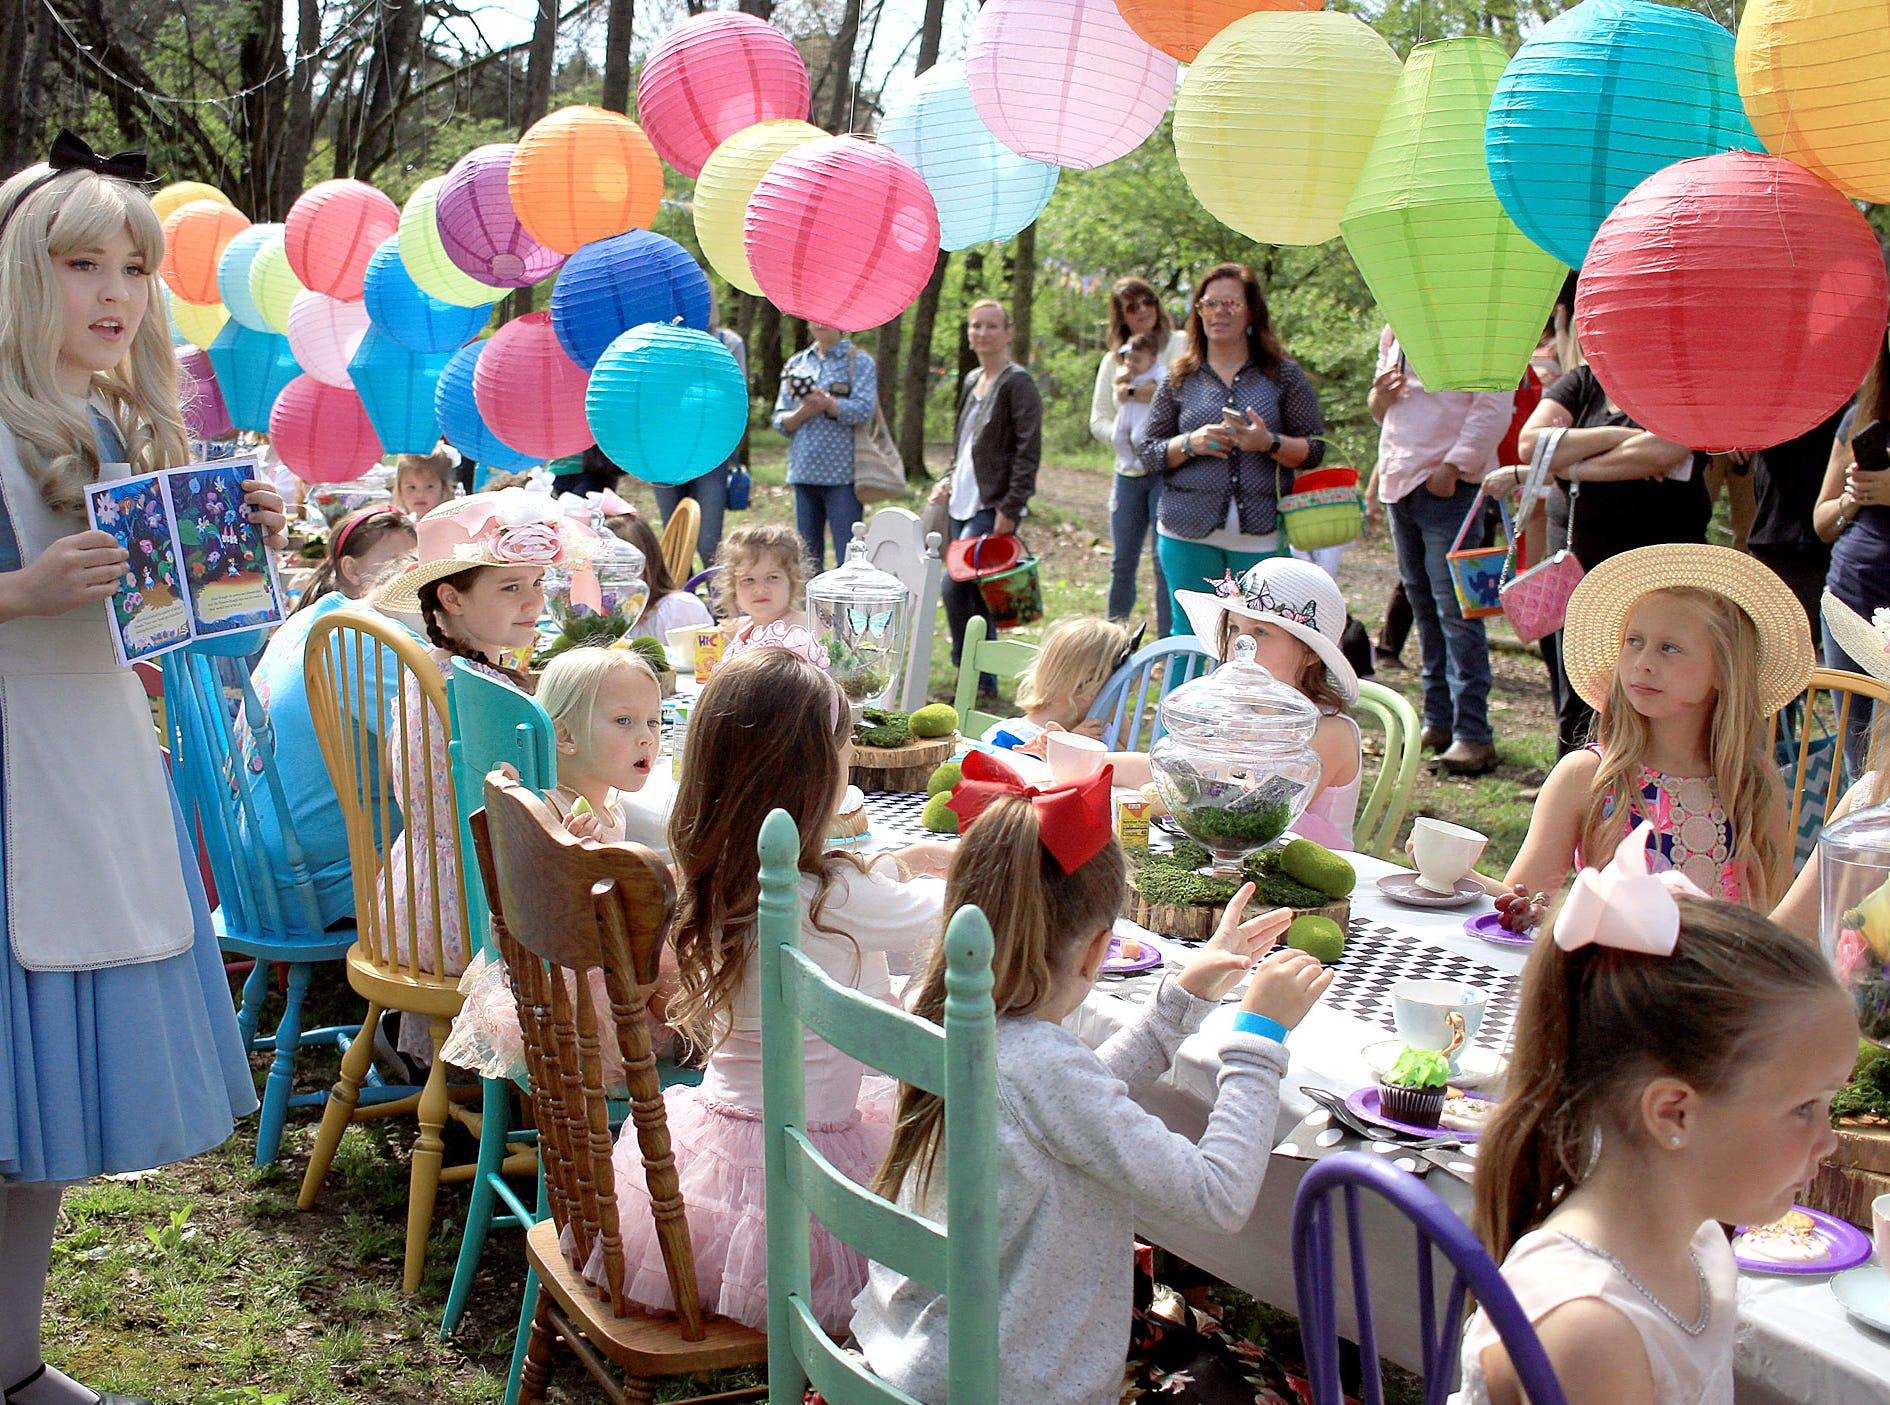 Alice in Wonderland reads the book to those in attendance at the Mad Hatter Tea Party at Rock Castle in Hendersonville, TN on Saturday, April 6, 2019.